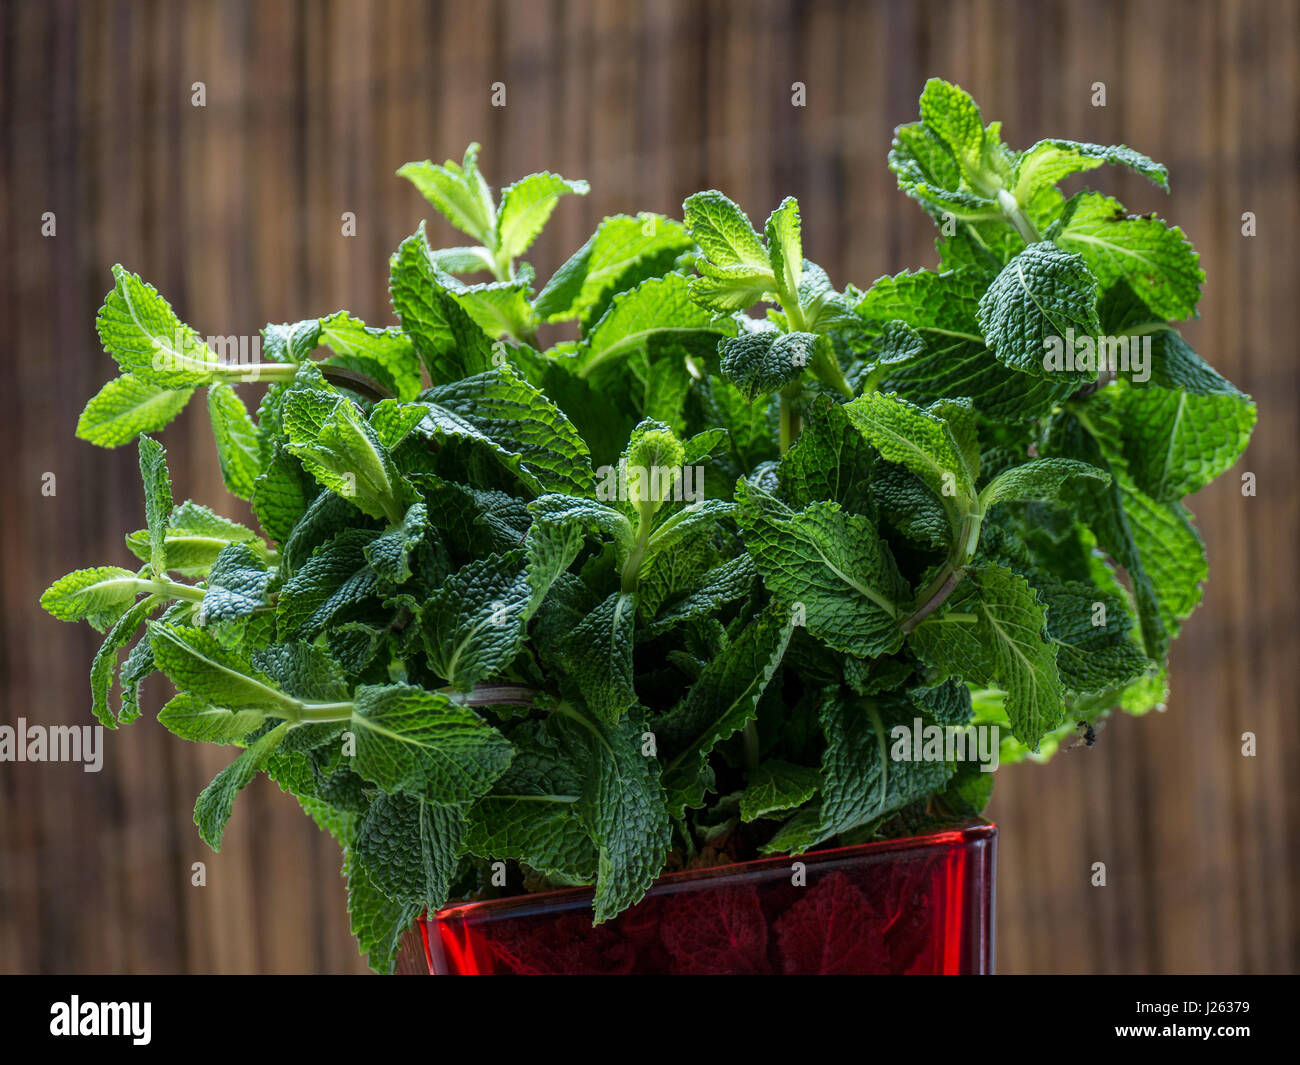 Mint bunch fresh fulsome sprig of aromatic fresh mint leaves near open kitchen window Stock Photo